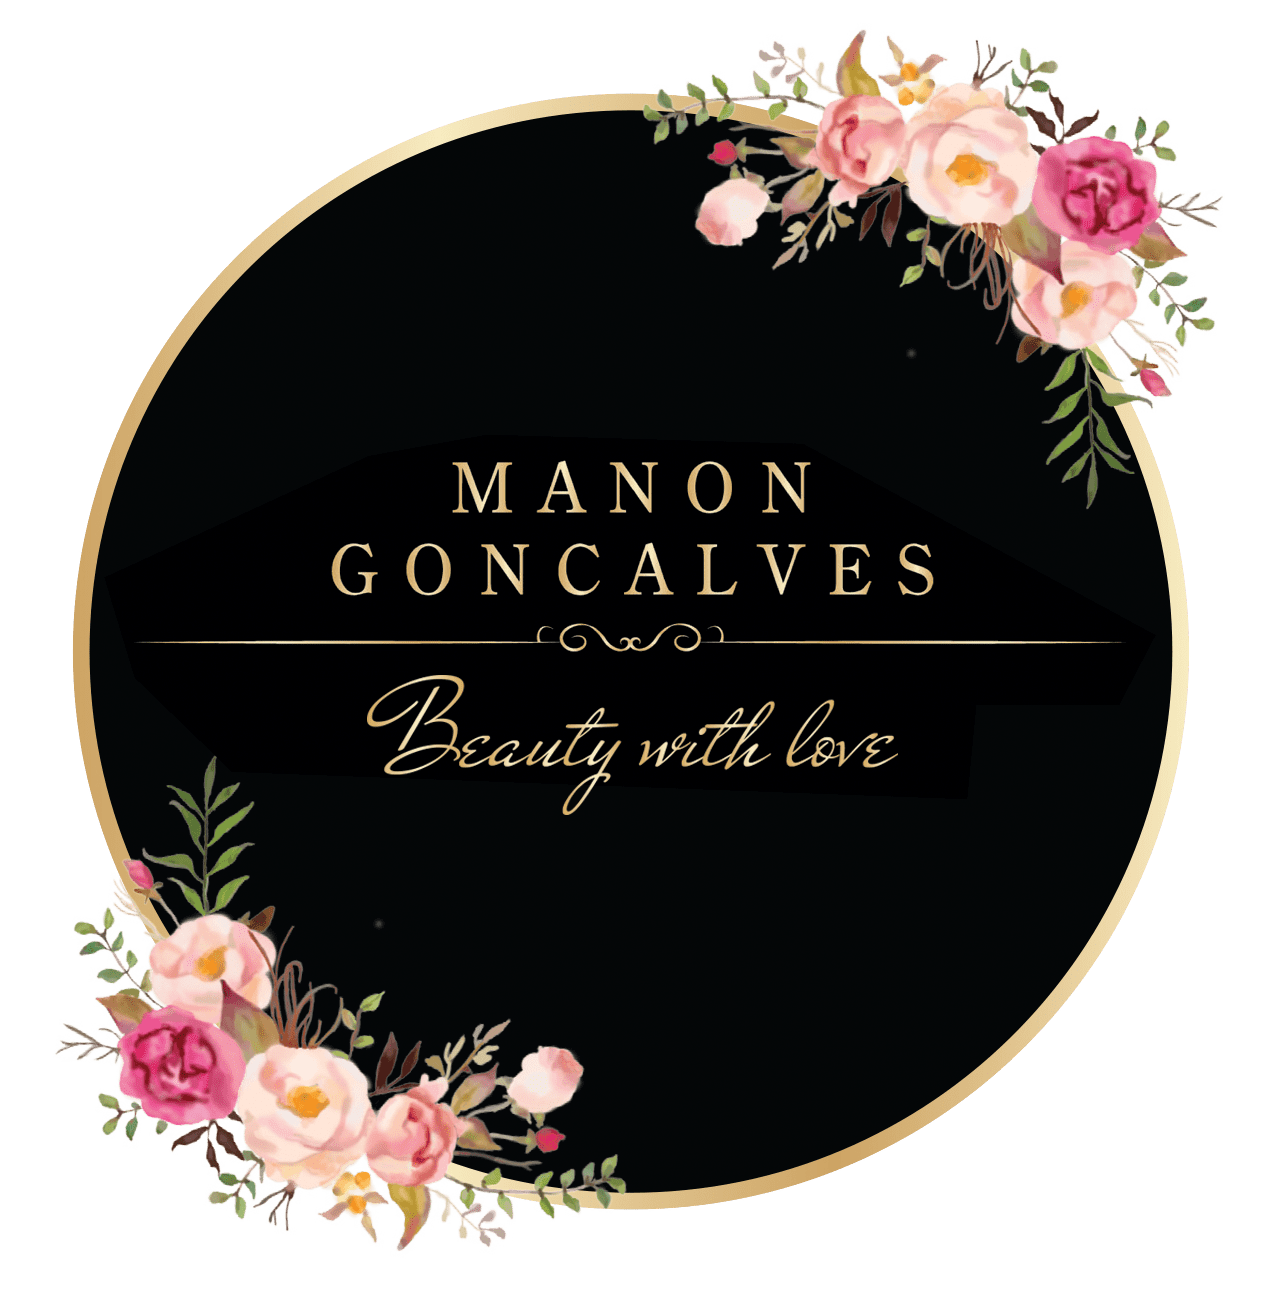 logo-manon-goncalves-paris